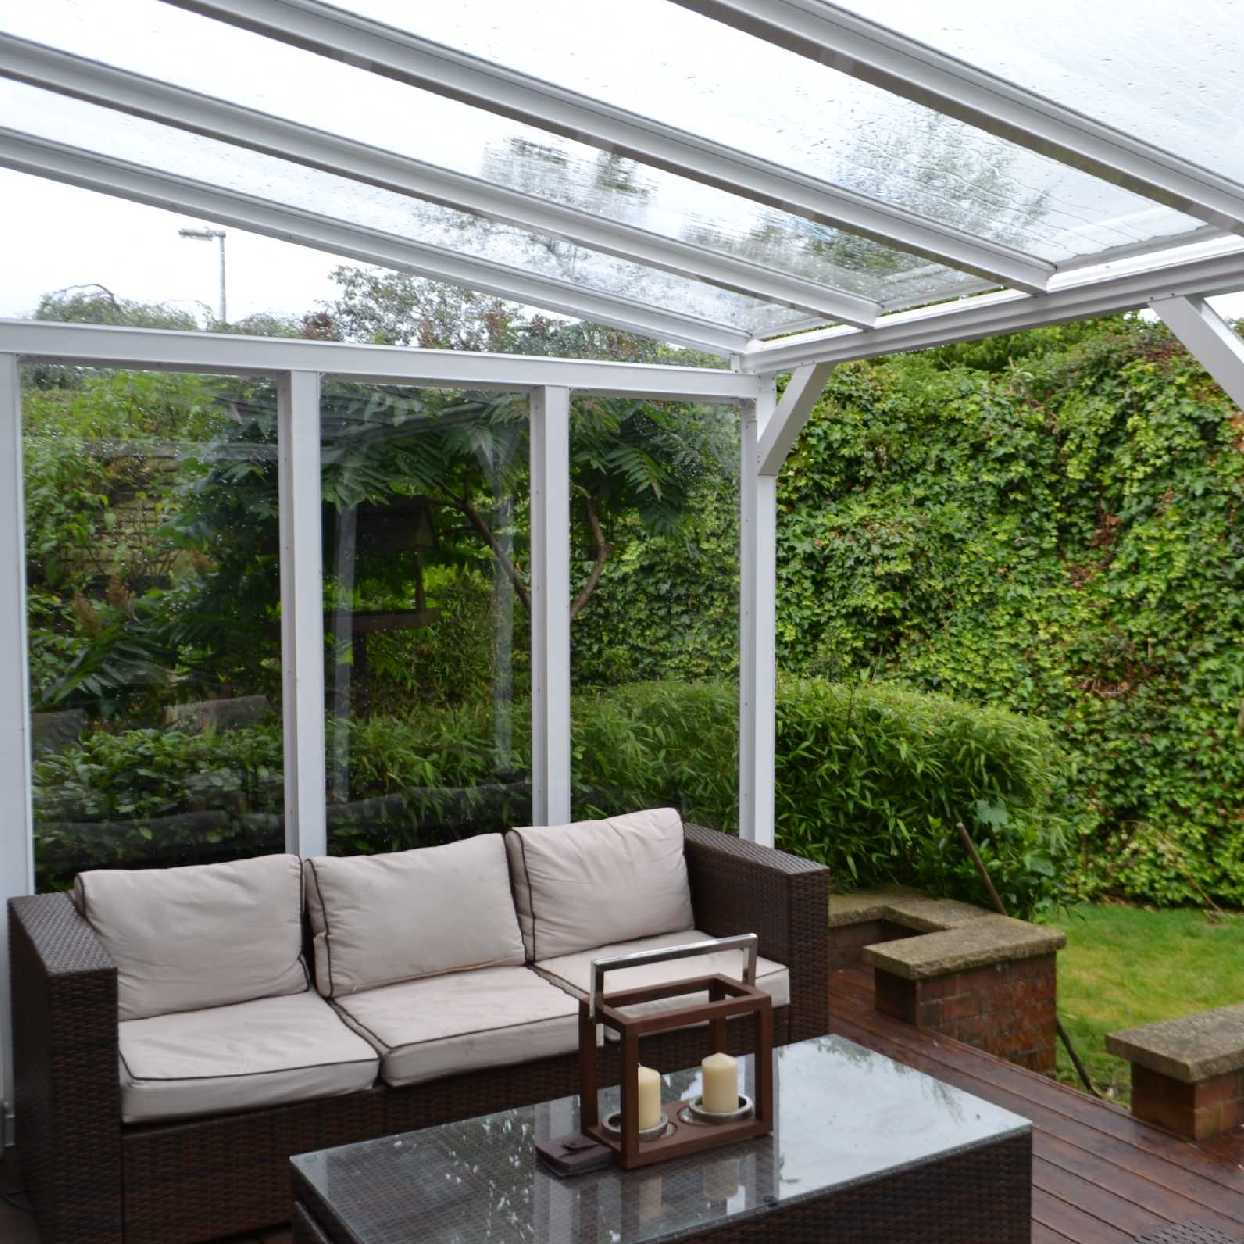 Great selection of Omega Smart White Lean-To Canopy with 16mm Polycarbonate Glazing - 4.2m (W) x 1.5m (P), (3) Supporting Posts